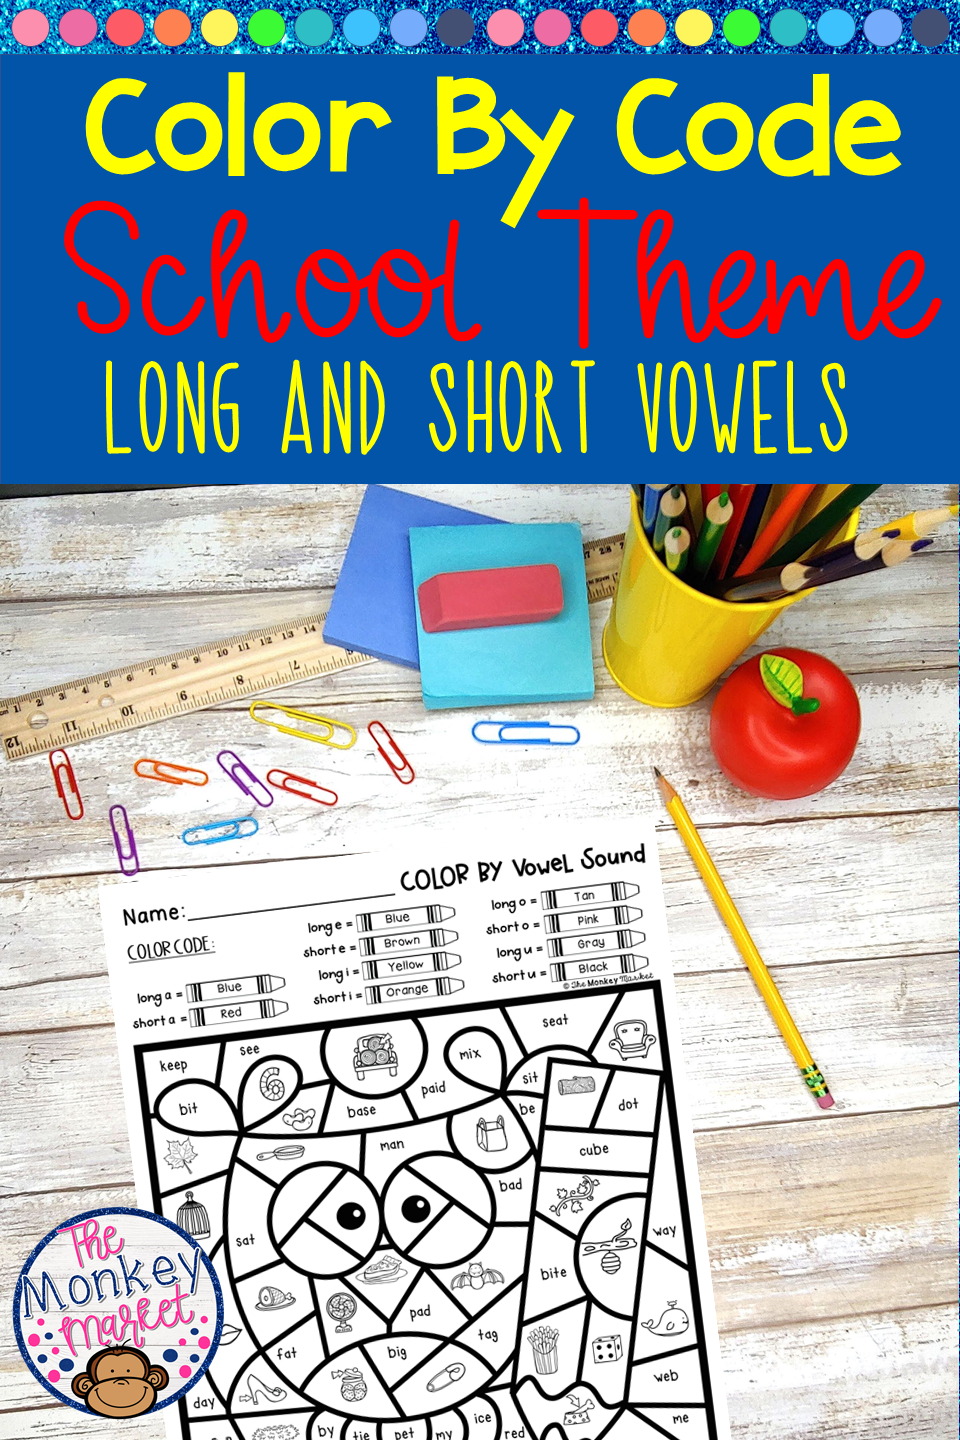 Long And Short Vowels Color By Code Elementary Phonics School Themes Vowel Sounds [ 1440 x 960 Pixel ]